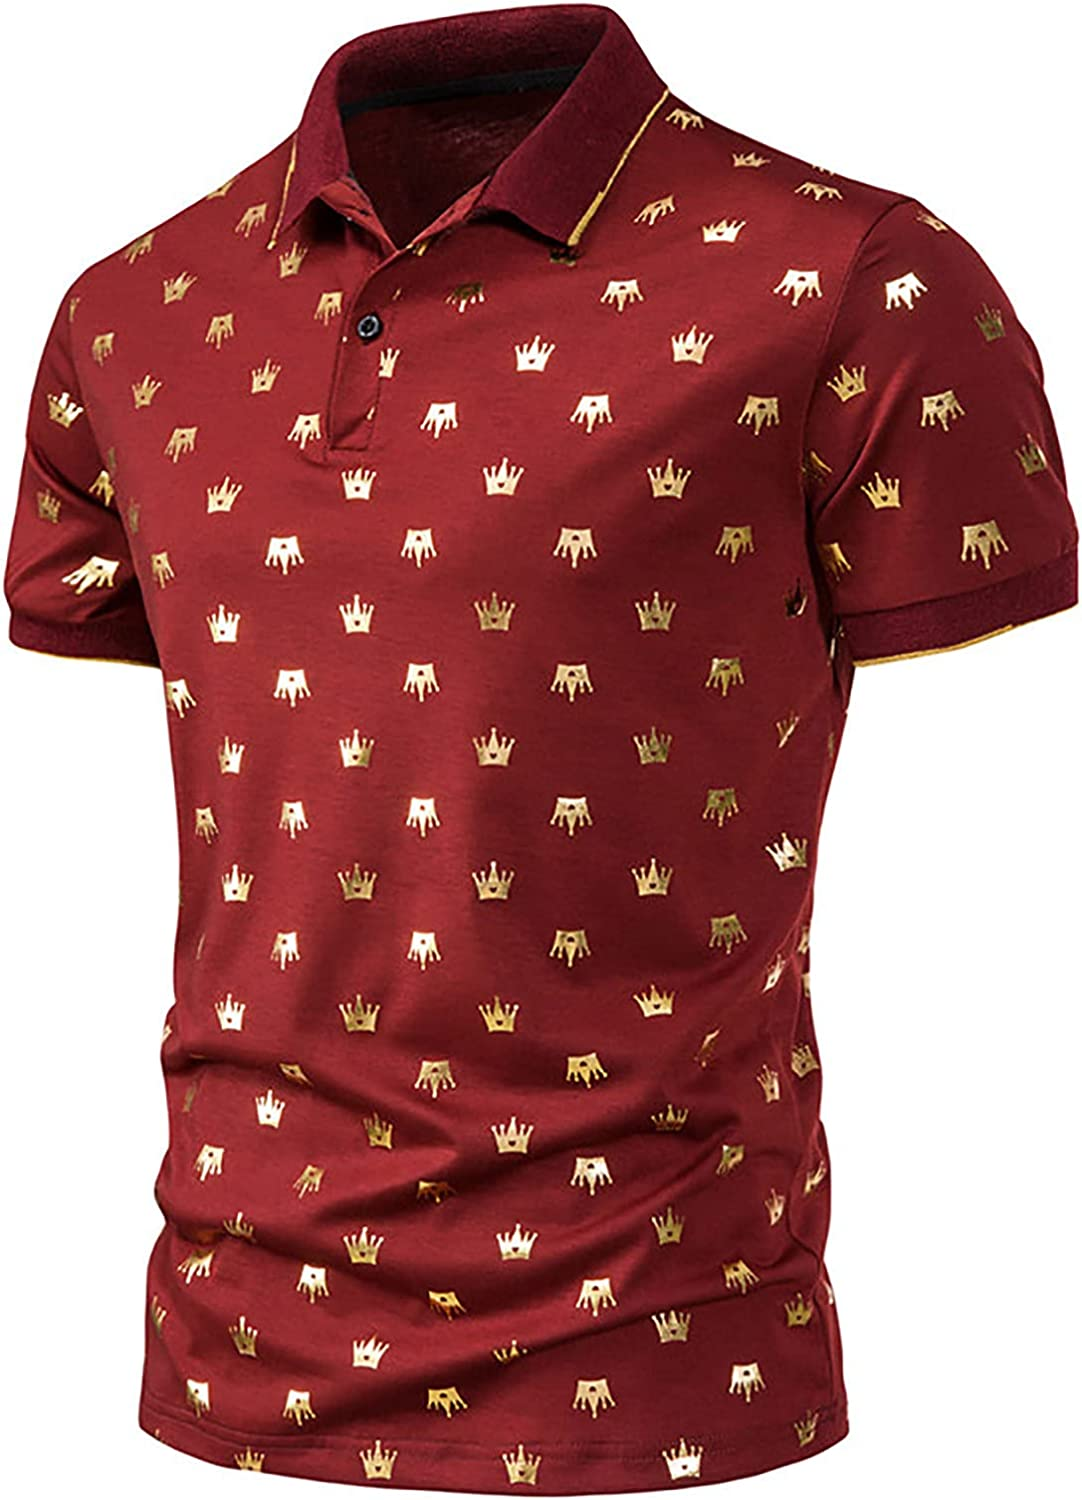 Men's Summer Shirts Casual Turn Down Collar Cotton T-Shirts Fashion Golden Crown Printed Tops Blouse